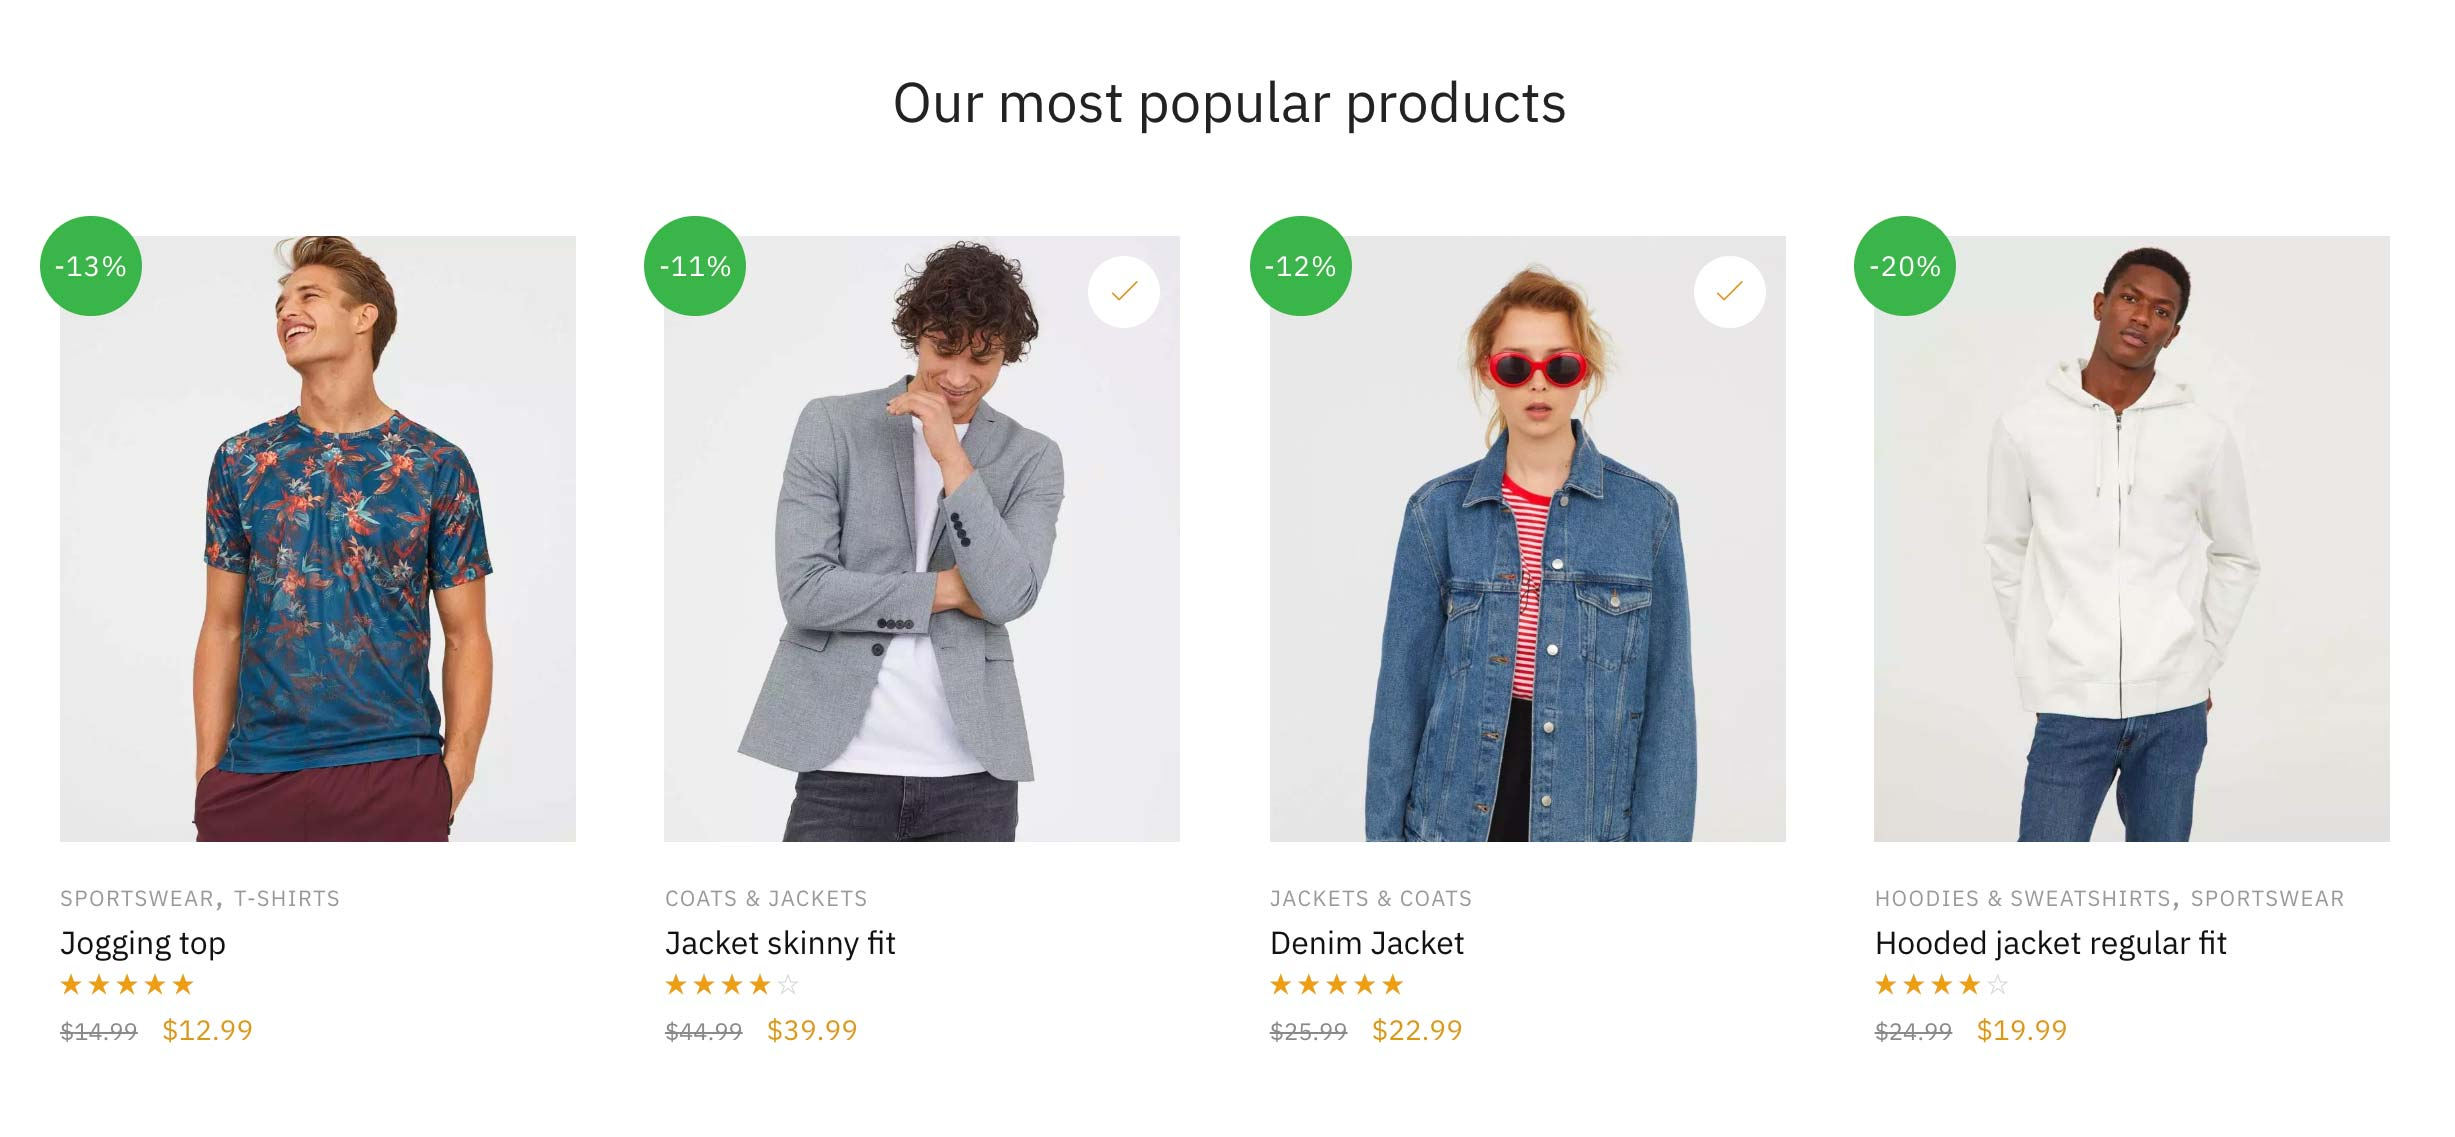 Displaying the most popular products in your store